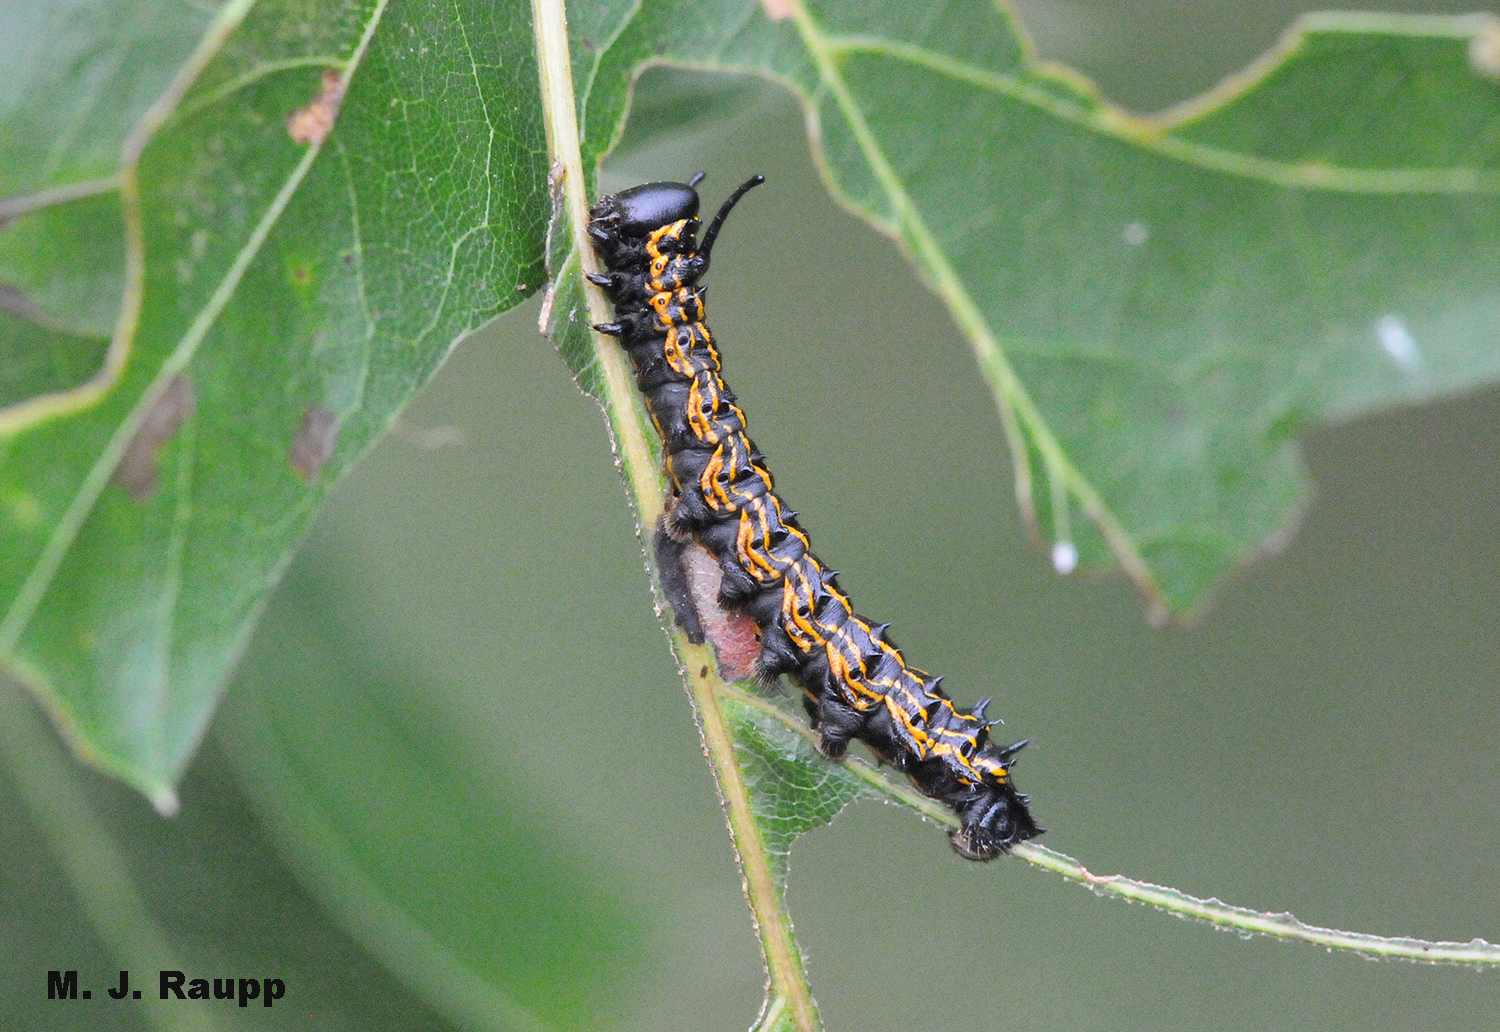 Orange racing stripes and a pair of fleshy horns behind the head make the oakworm one cool looking caterpillar.